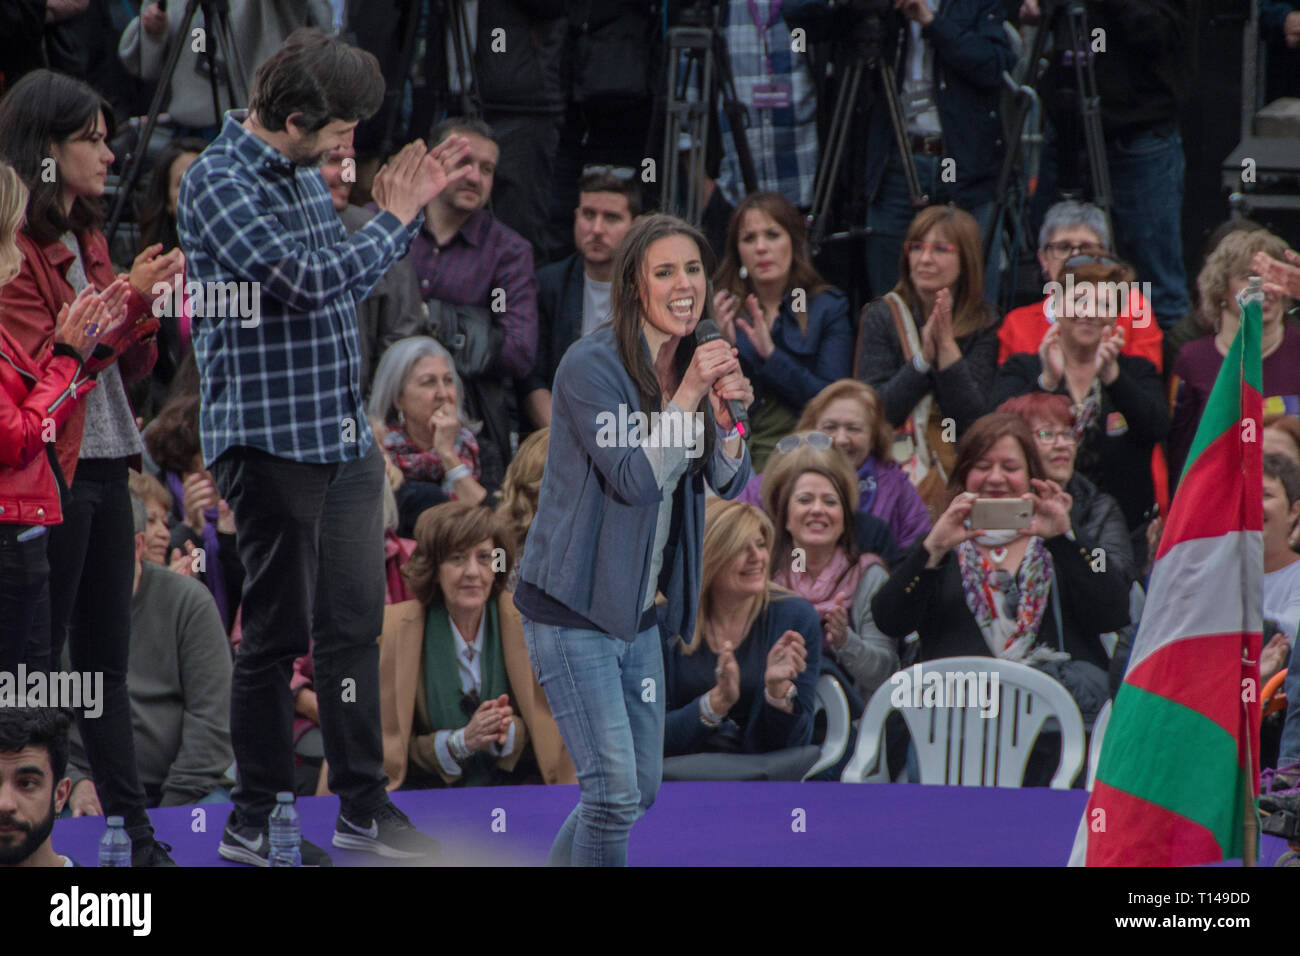 Madrid, Spain, 23rd March, 2019. Irene Montero second leader of Unidas Podemos giving an speech. pre-campaign of the united left party unidas podemos, for the five weeks of the campaign until April 28. Pablo Iglesias reappears in the public scene three months of his retirement to enjoy the paternity leave. the left party has chosen one of the most emblematic places for them the political space the square attached to the reina sofia de madrid museum. Credit: Alberto Sibaja Ramírez/Alamy Live News - Stock Image